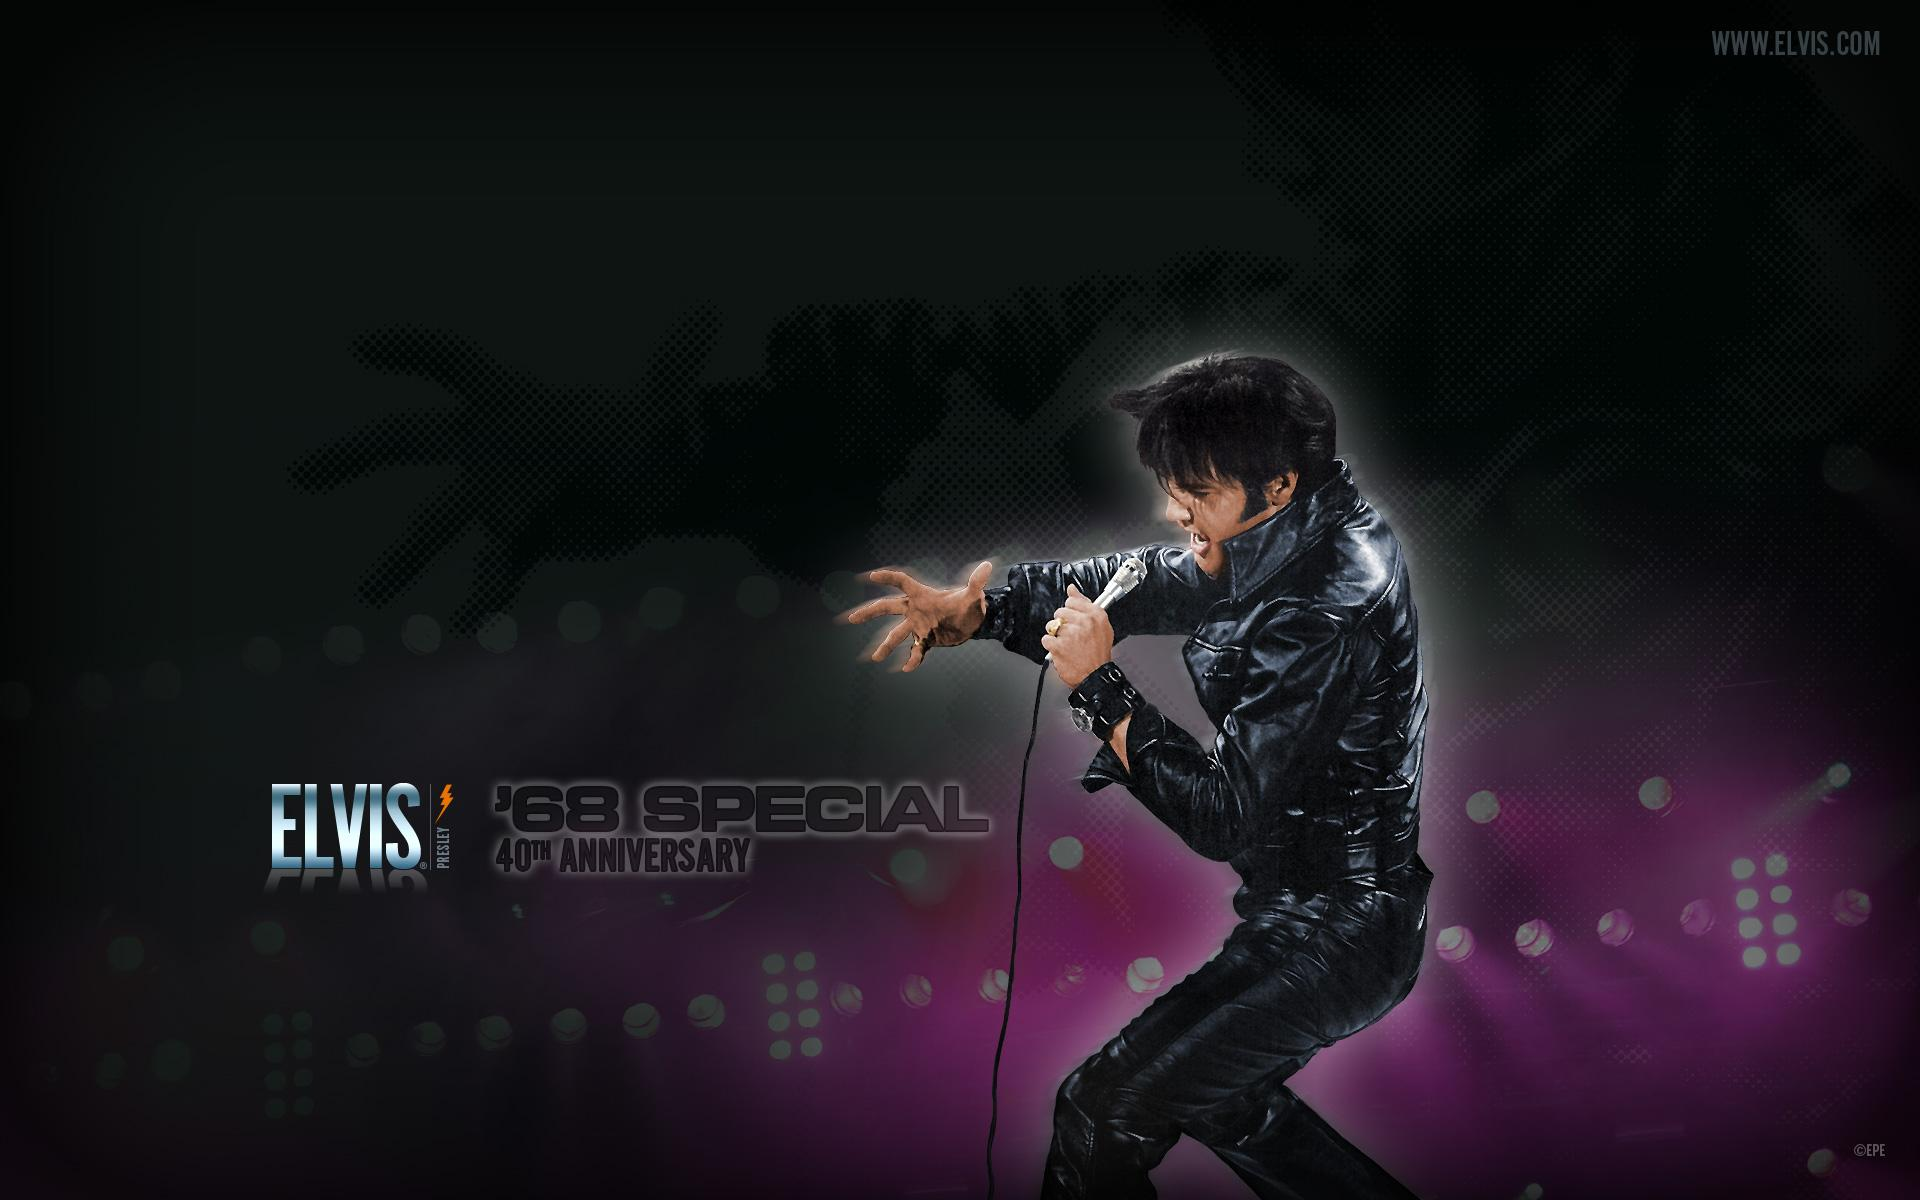 Elvis Presley Wallpapers, Pictures, Image